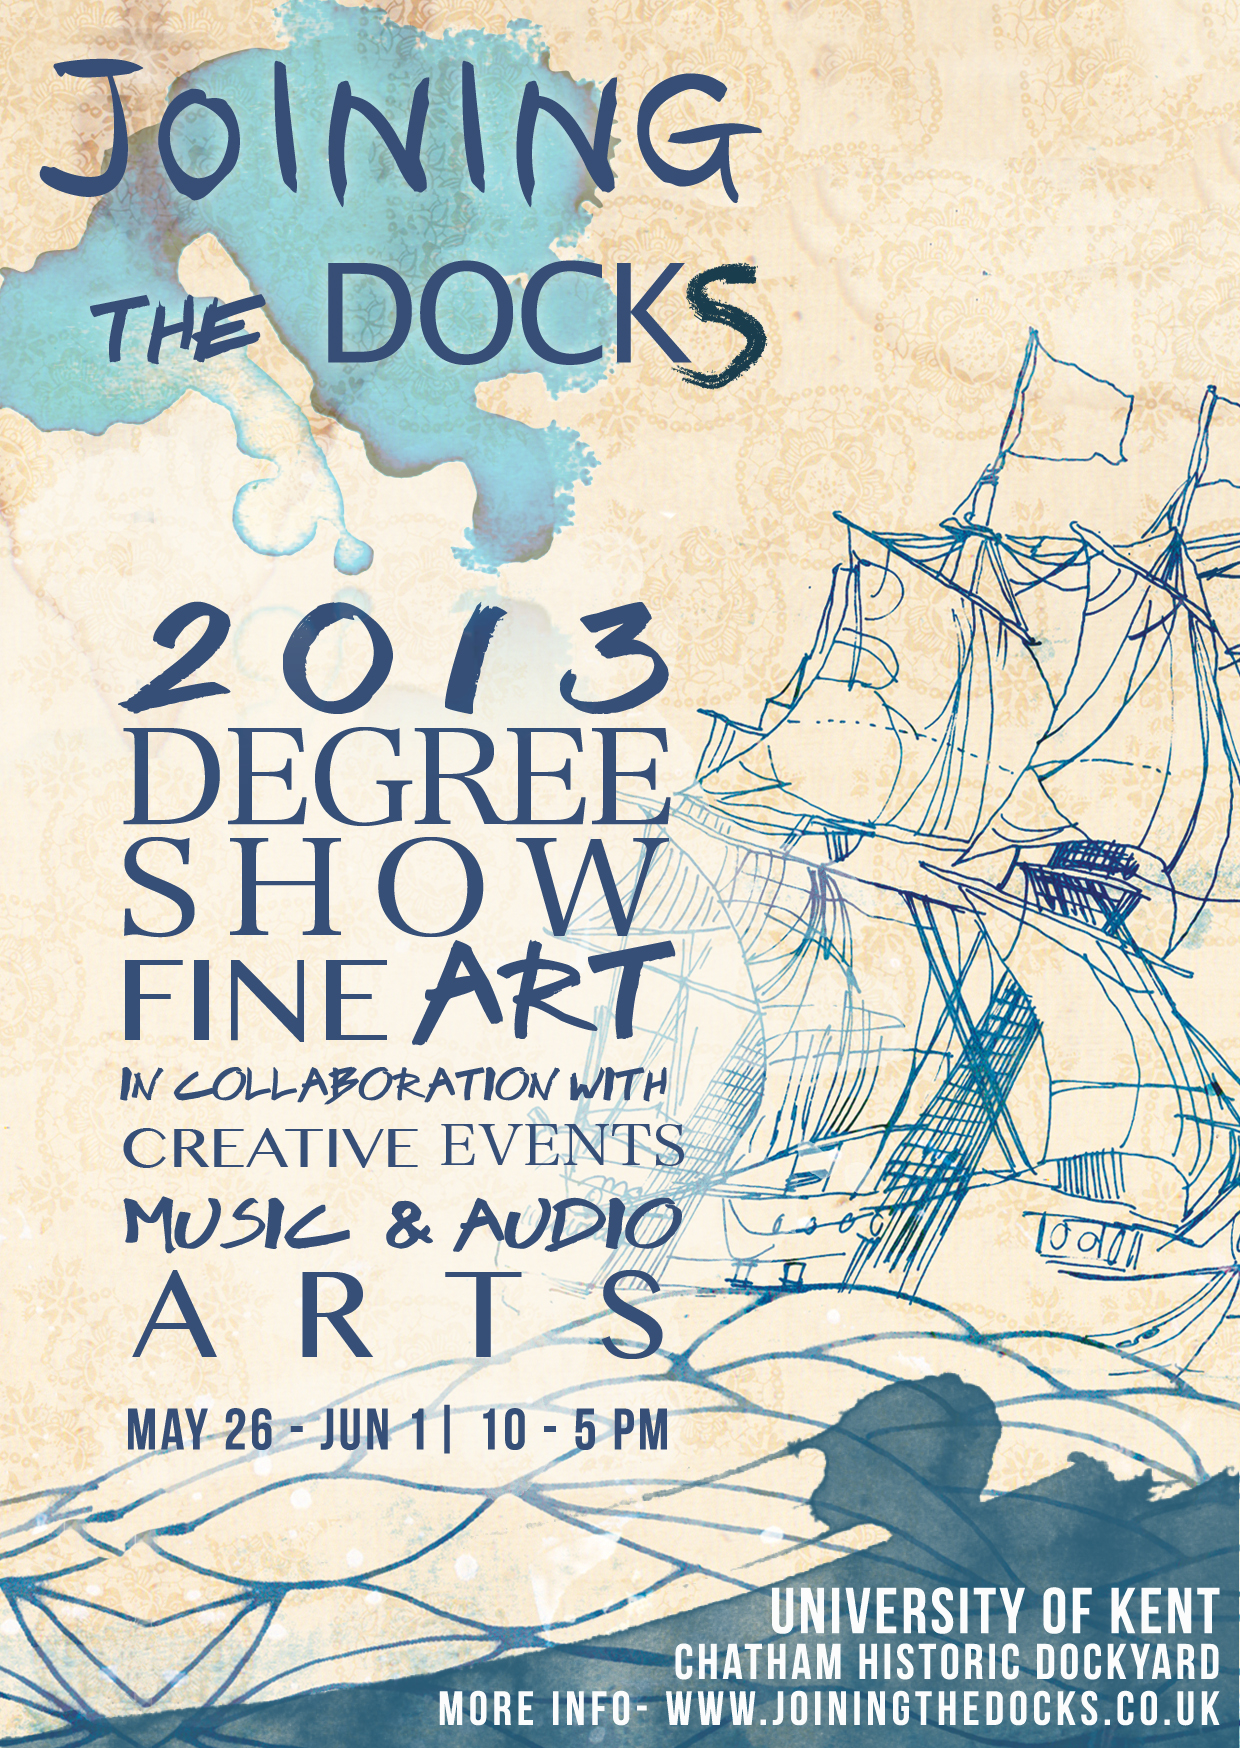 Joining The Docks - Degree Show At School Of Arts - 26th May to June 1st 2013 - Chatham